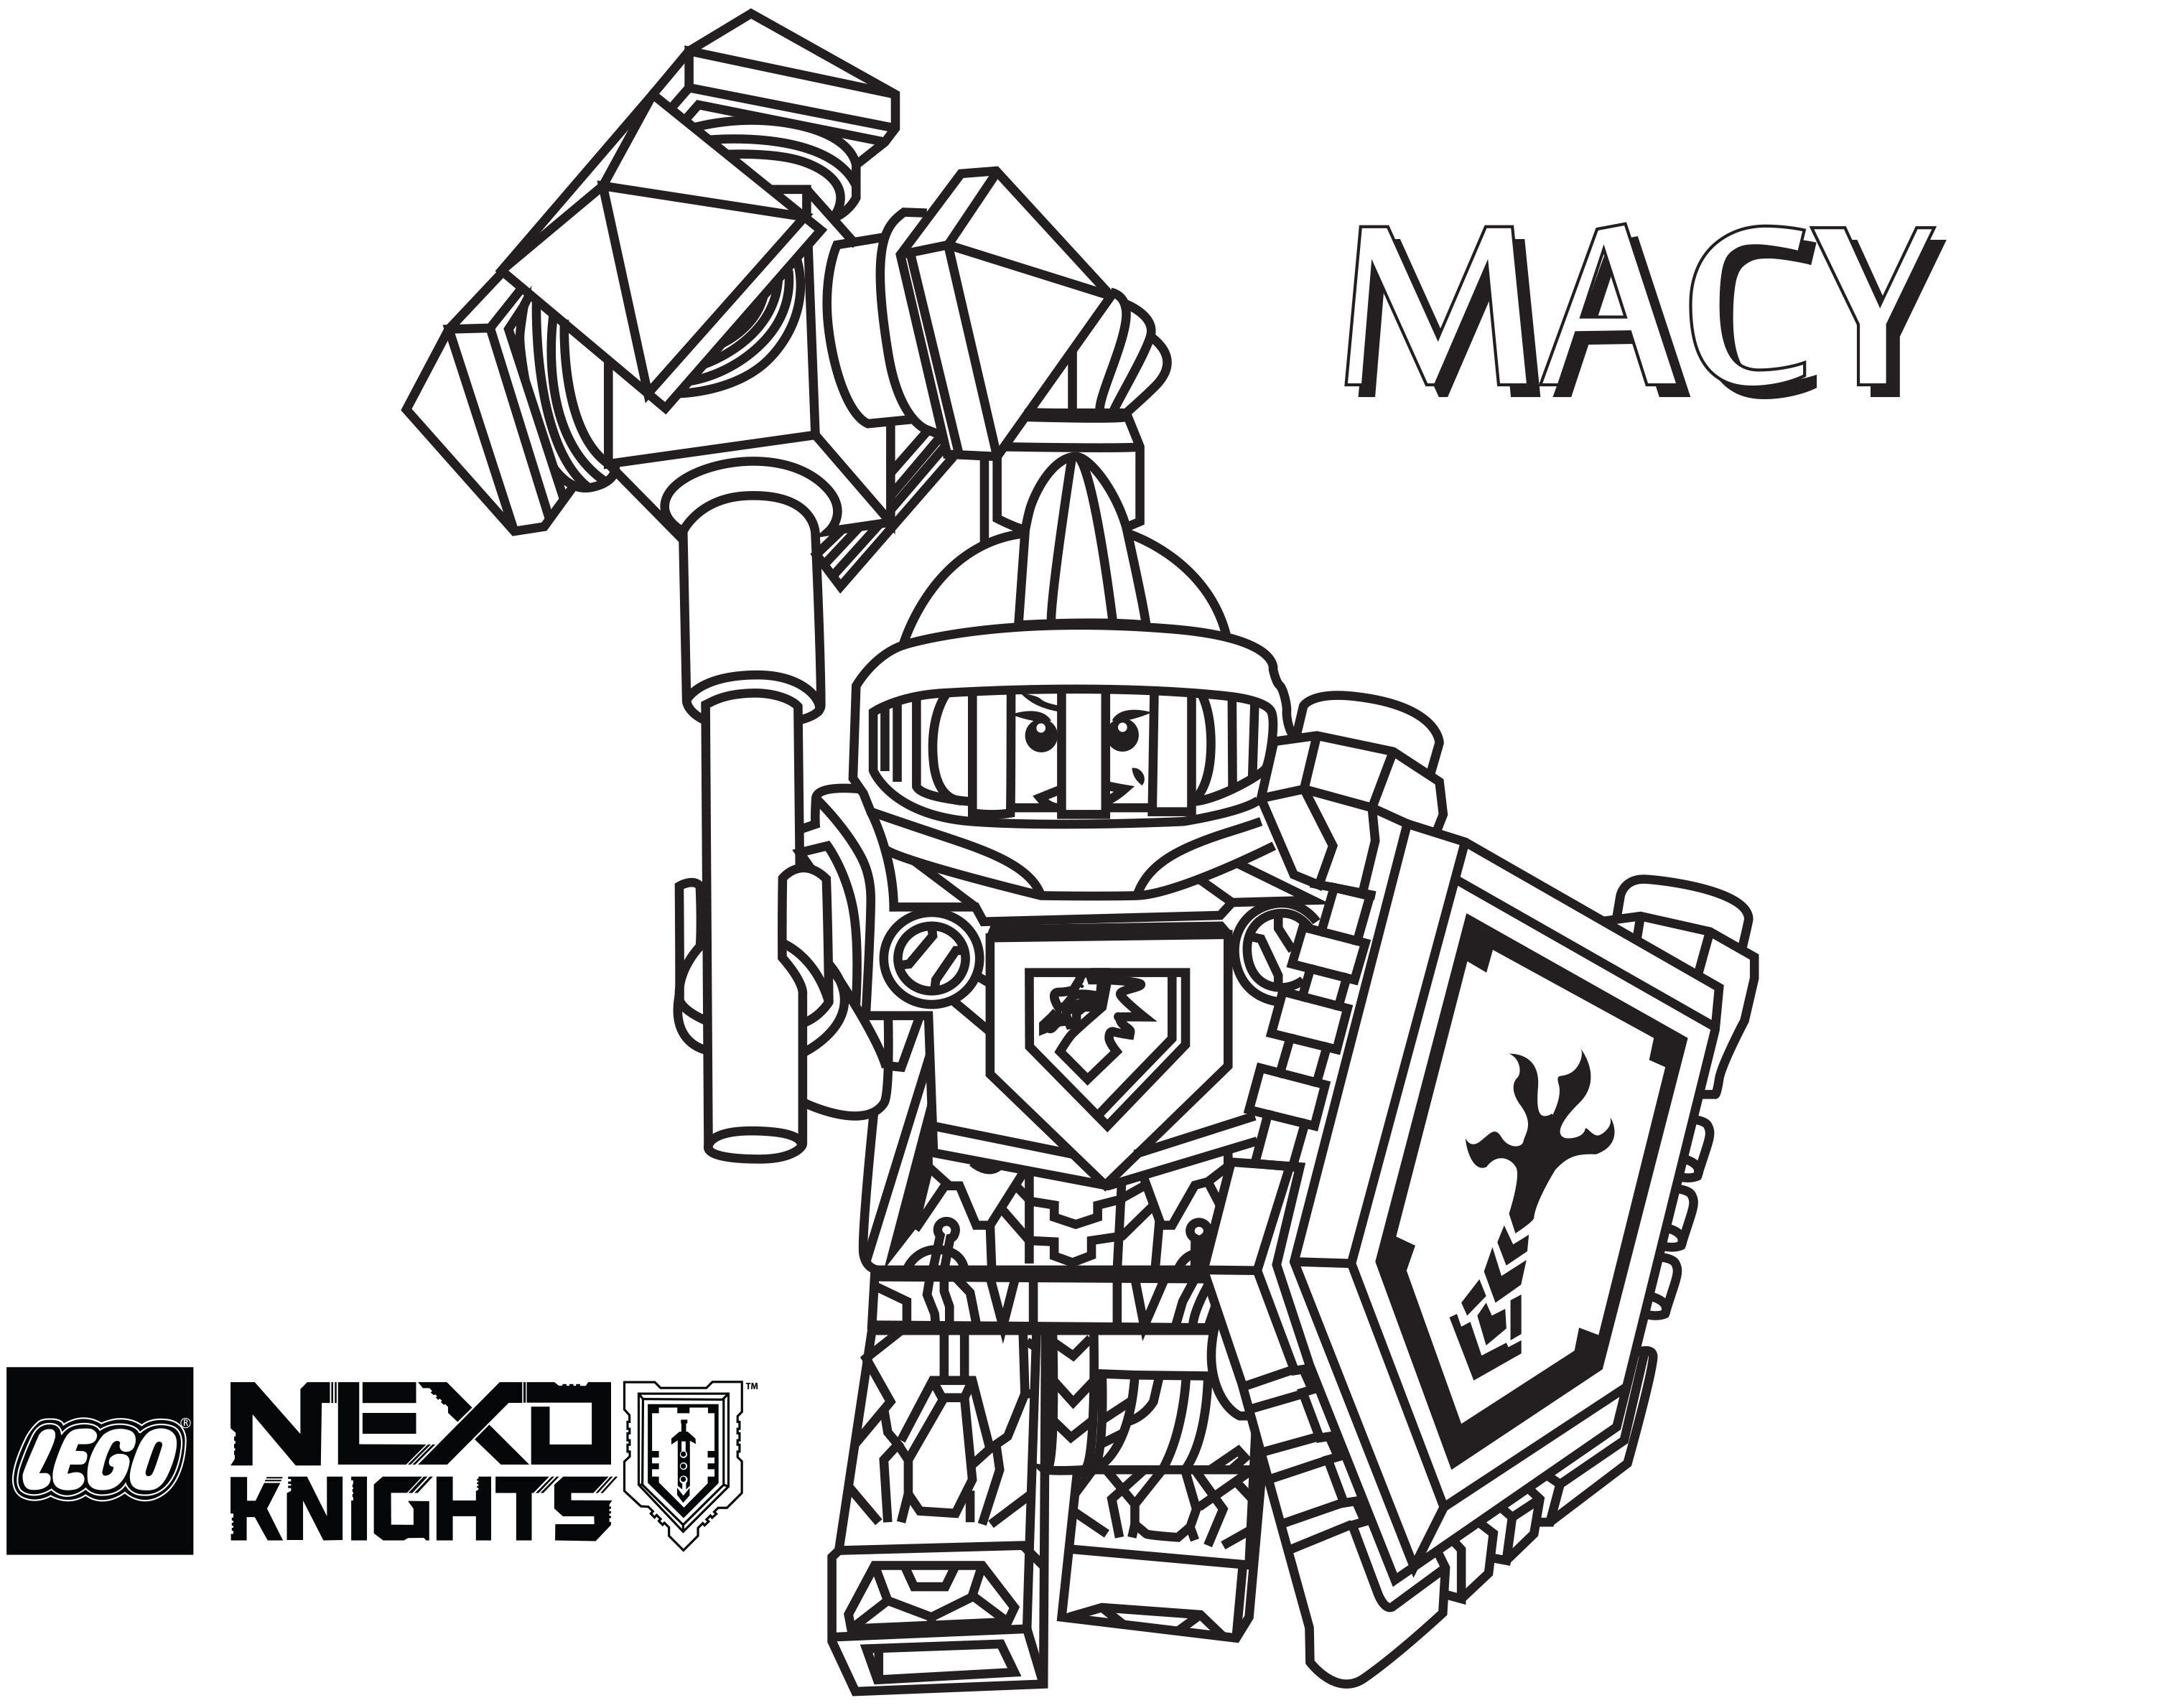 29 new lego nexo knights coloring pages released lego news coloring home. Black Bedroom Furniture Sets. Home Design Ideas